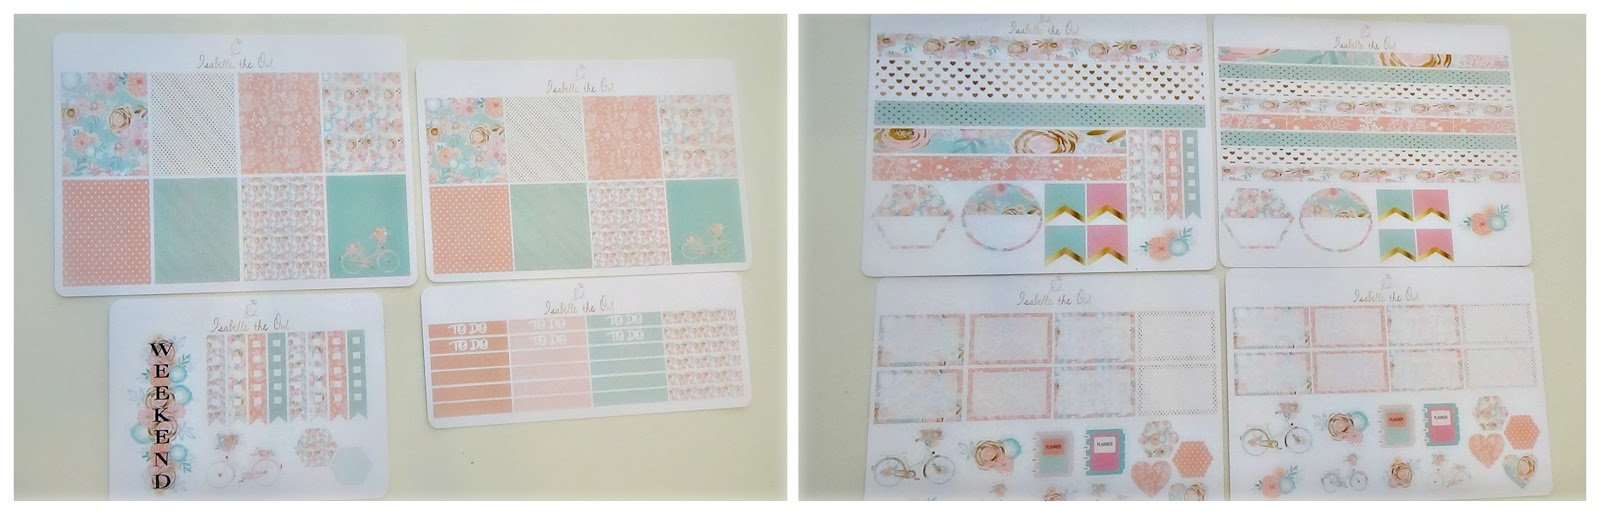 etsy sticker haul video kjaggers com planner stickers and the horizontal peachy perfect erin condren weekly kit i plan on using these a little in my midori and on our family calendar that